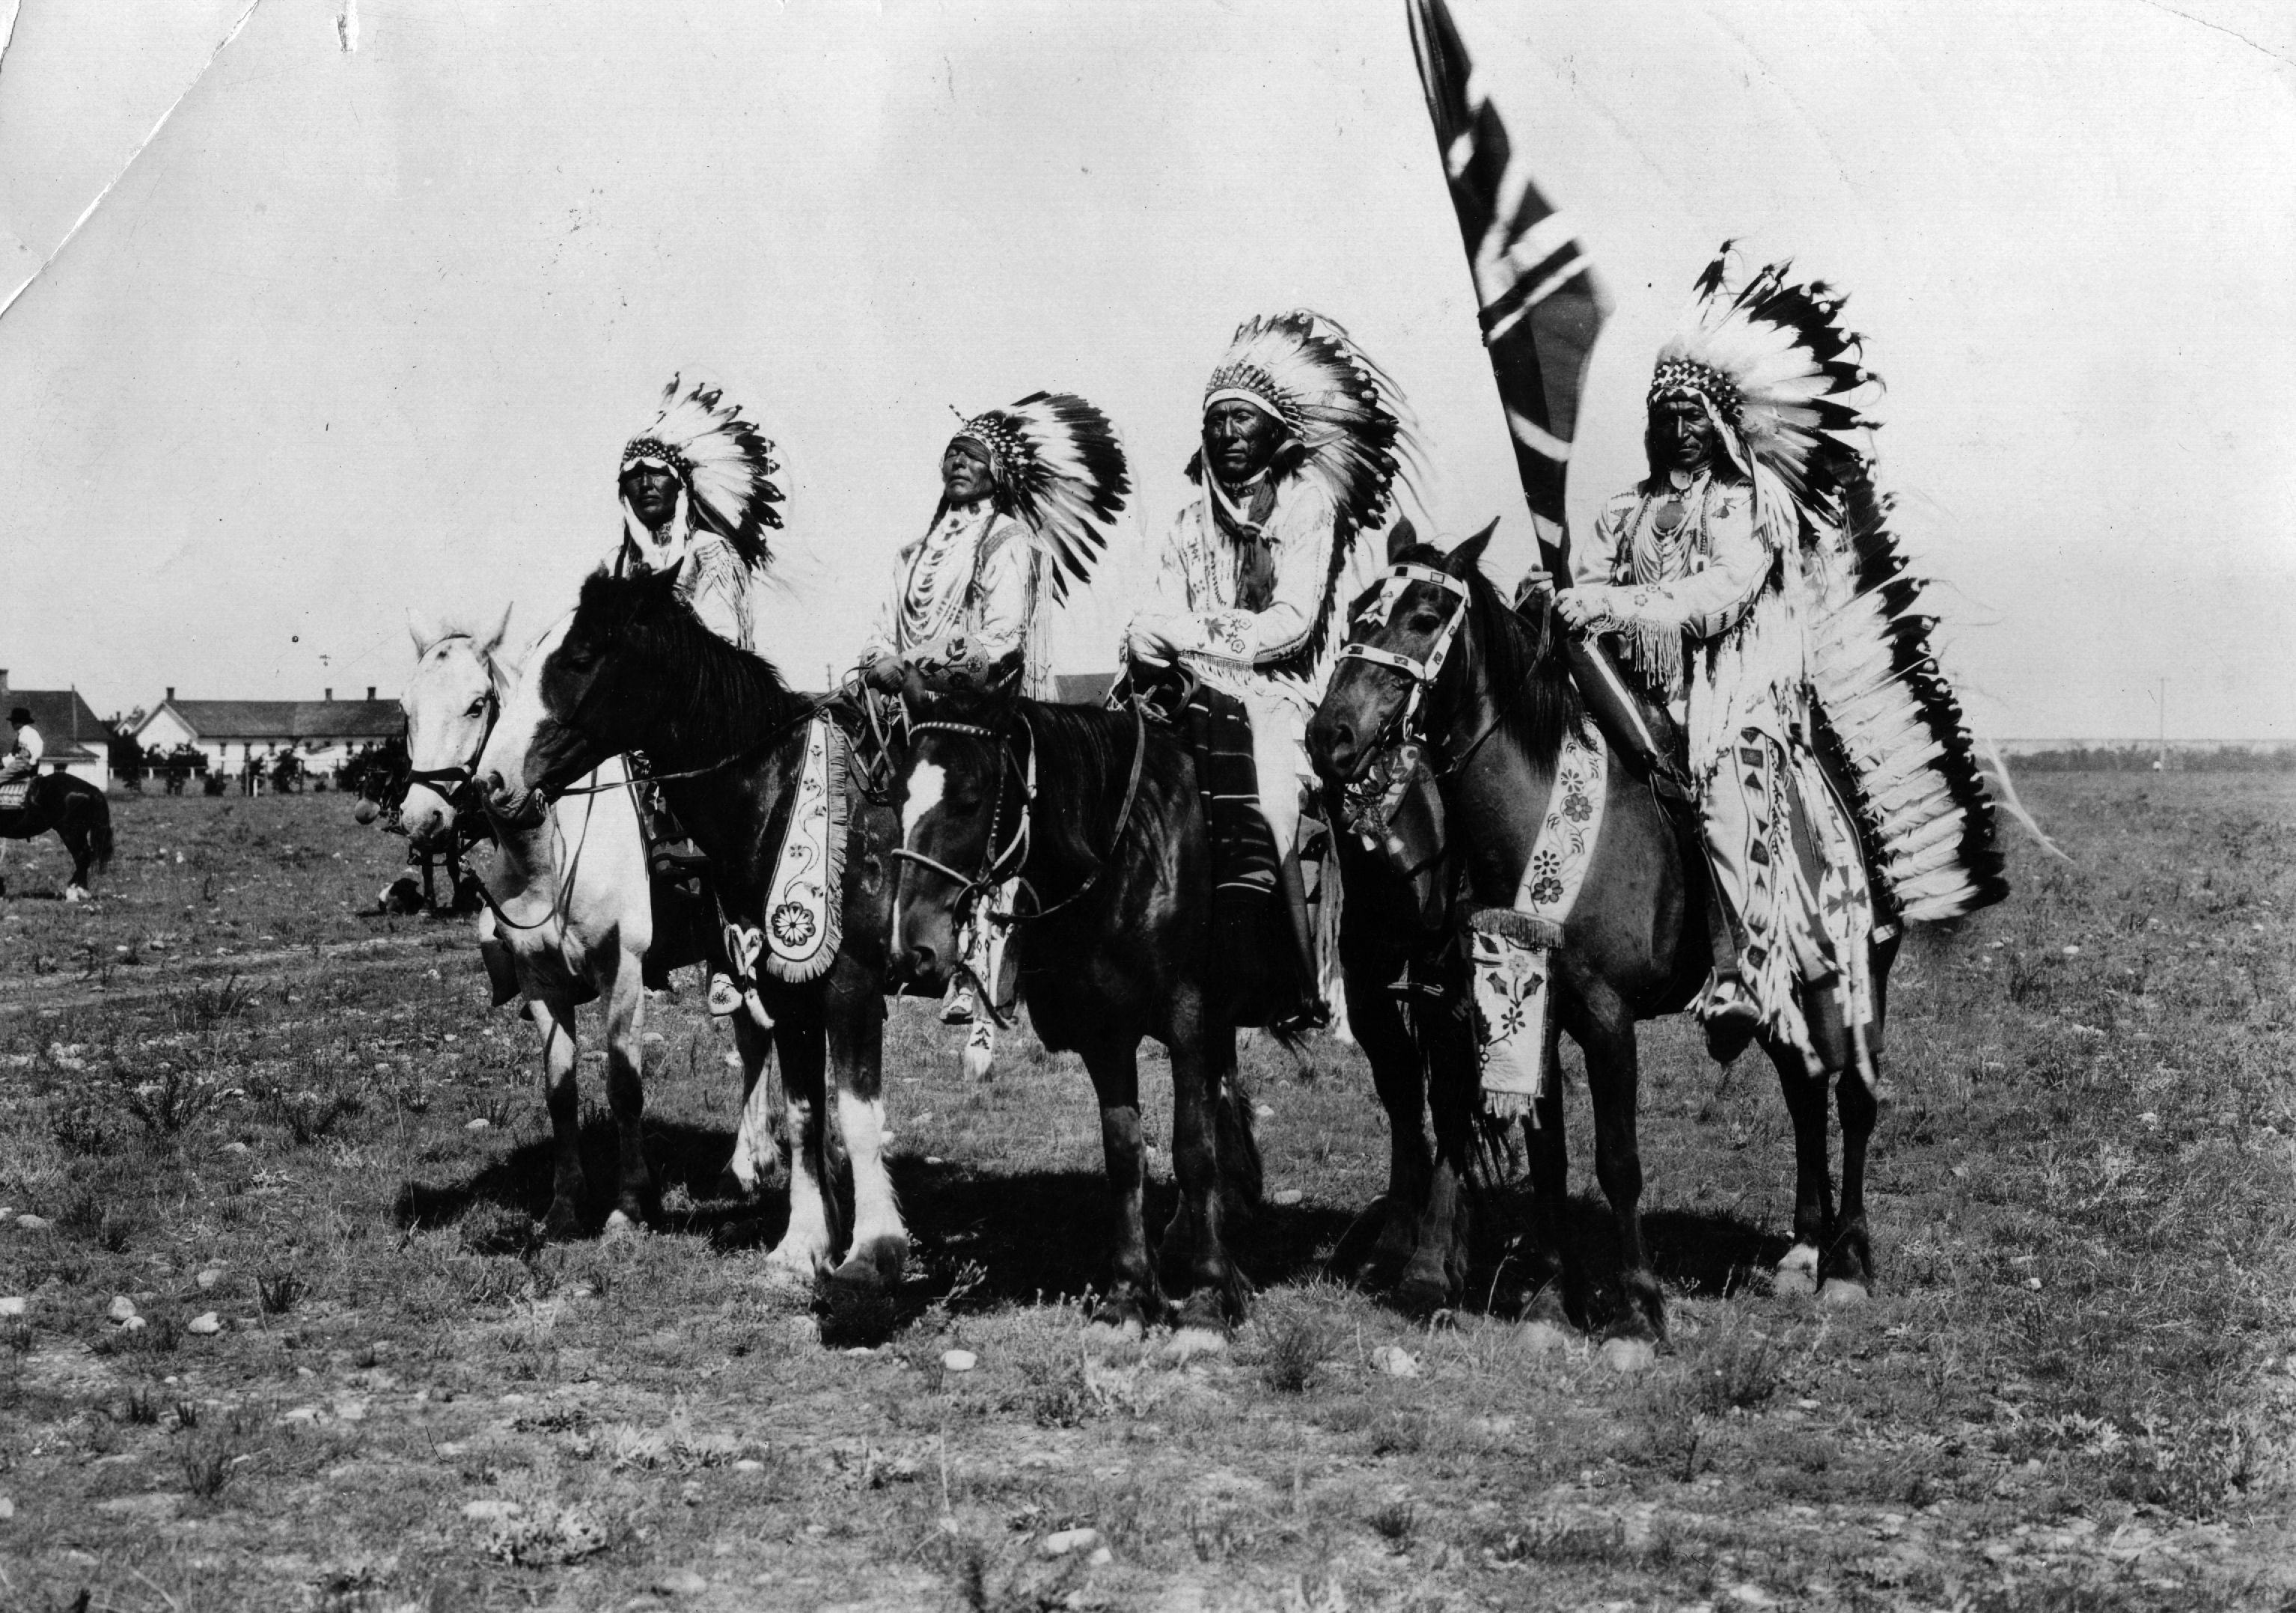 Native chiefs on horseback, wearing long, feathered headdresses.